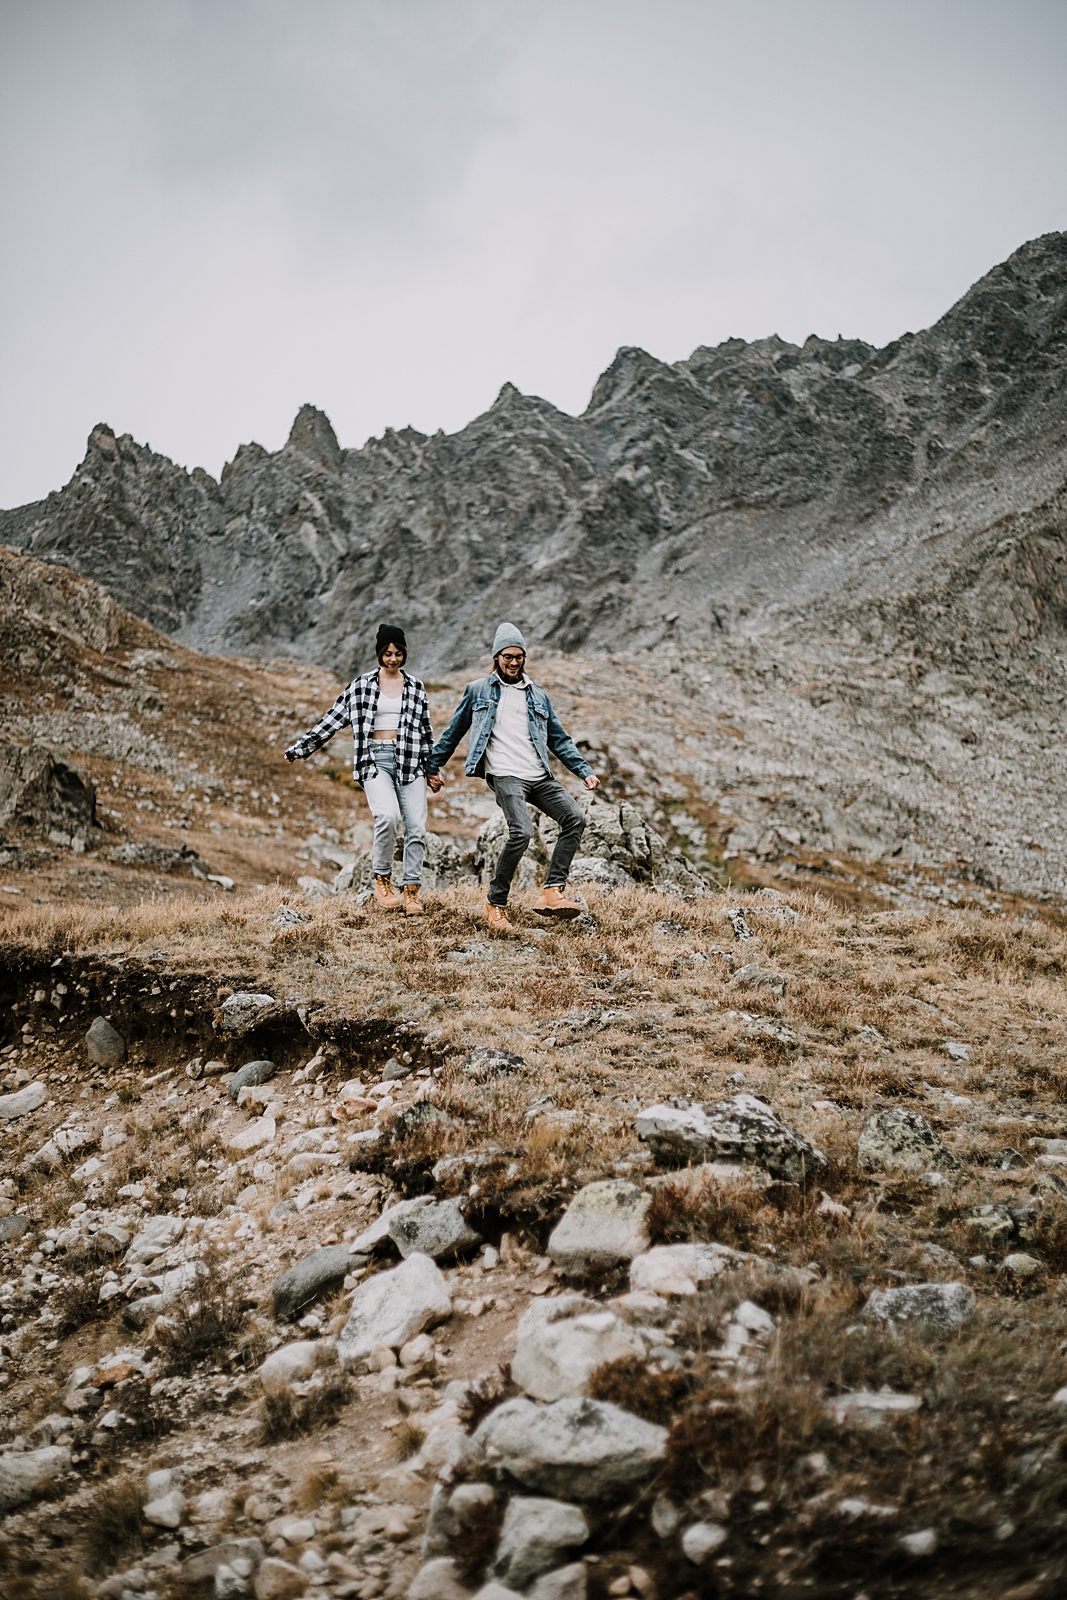 couple hiking, summer hiking mayflower gulch leadville and copper colorado, off road jeeping to mayflower gulch, sunrise at mayflower gulch, mayflower gulch engagements, leadville wedding photographer